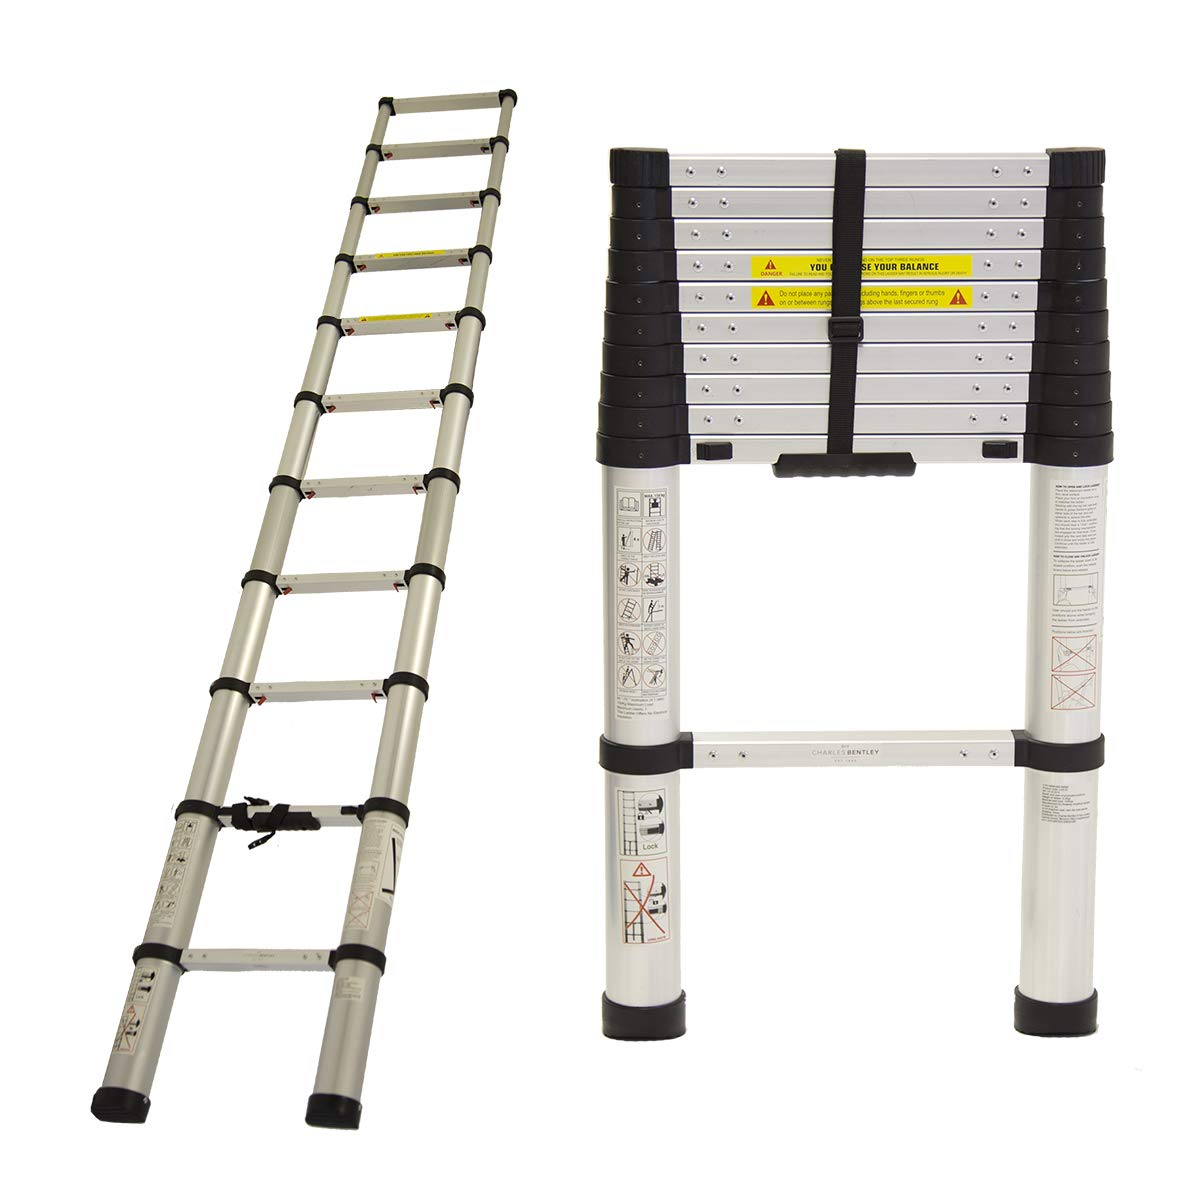 Charles Bentley 3.2m Telescopic Extendable Ladder